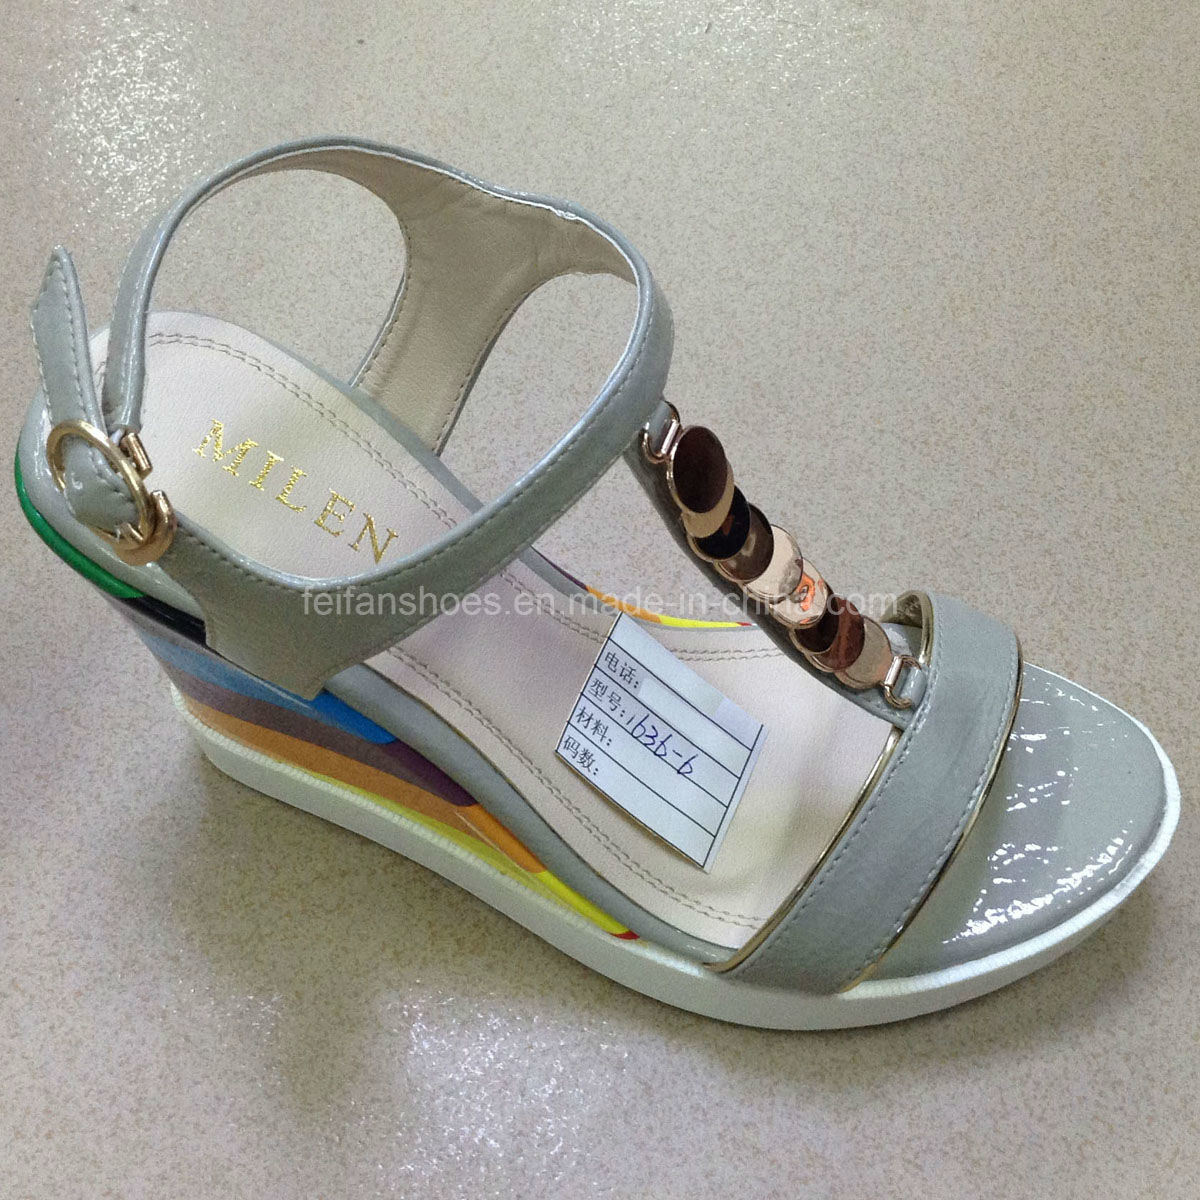 up-to -Date Good Quality Women PU Wedges Sandals (JH016 -6)